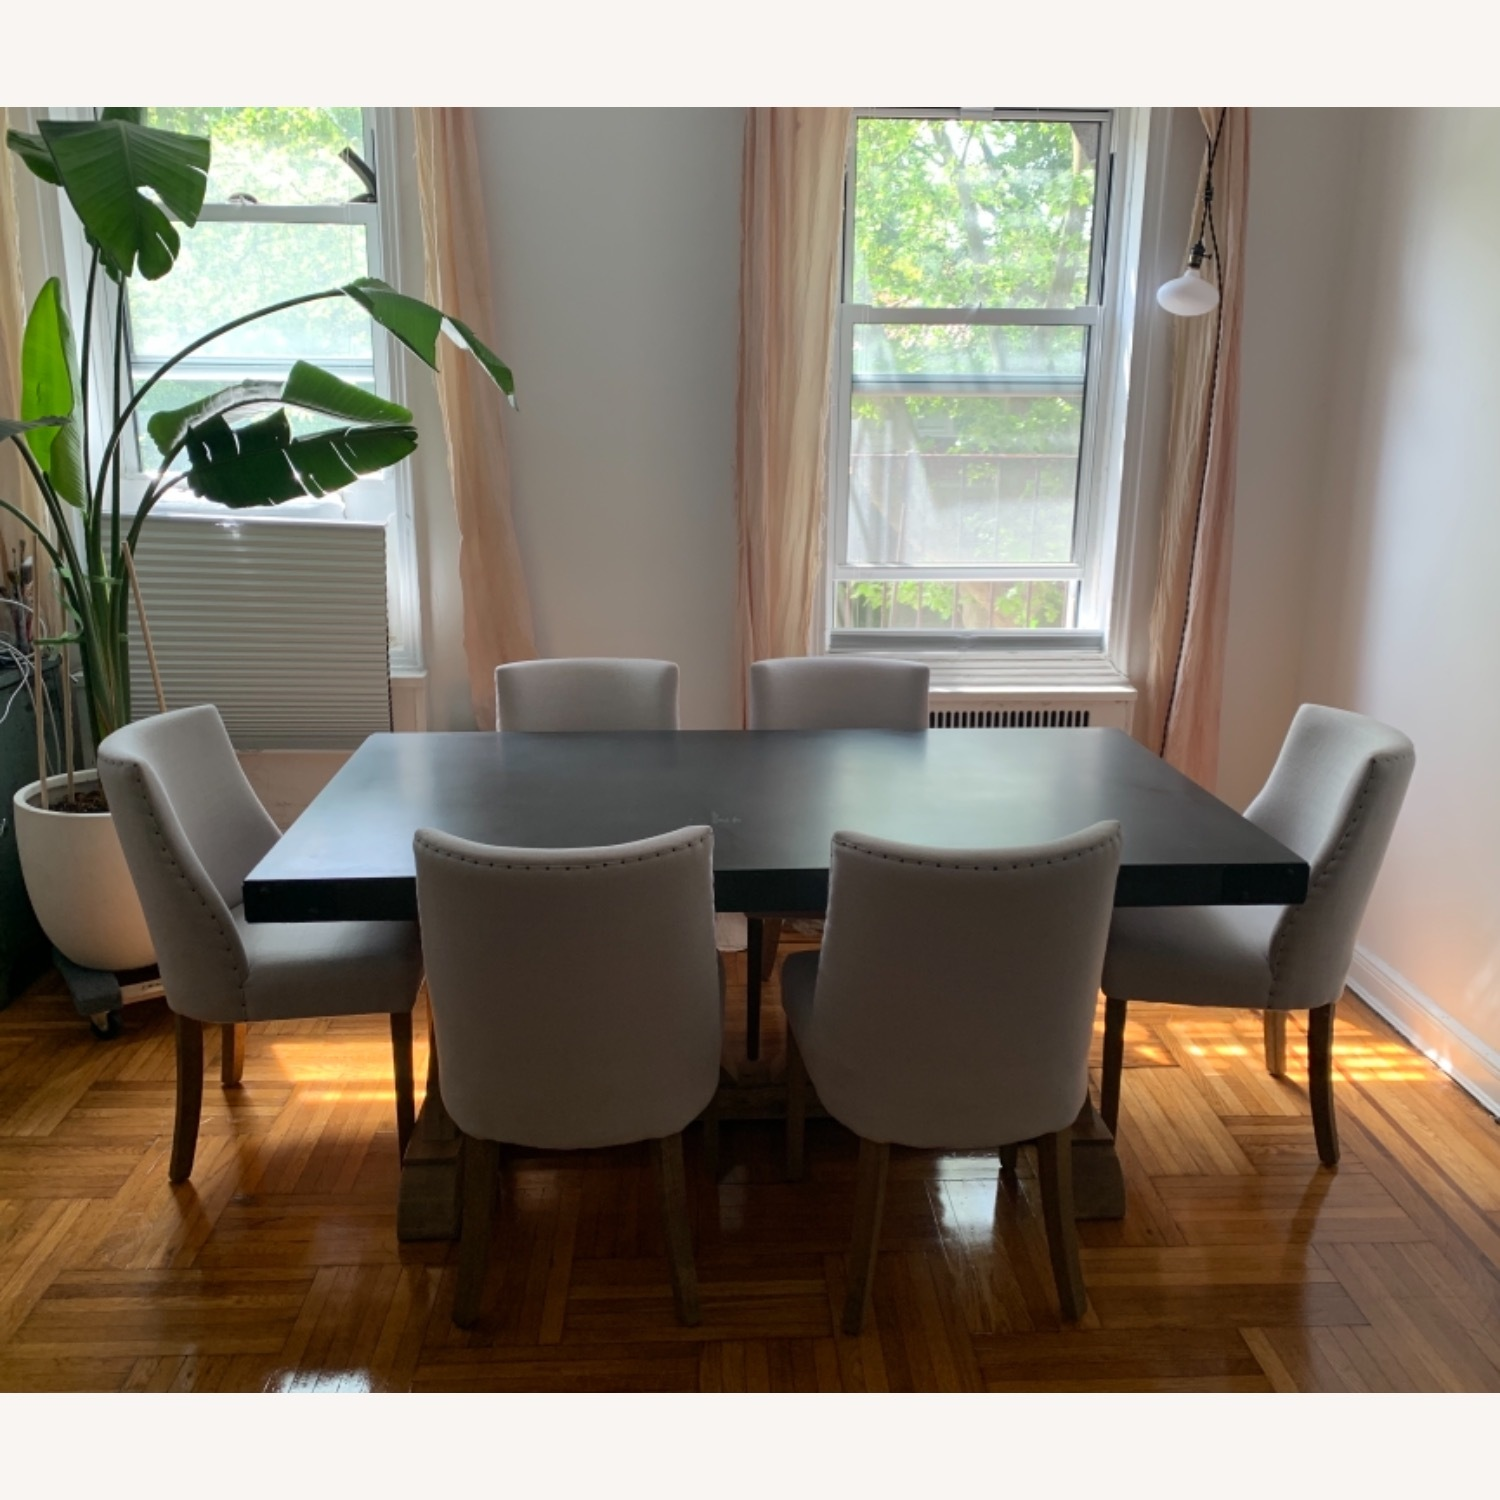 Restoration Hardware Salvaged Wood and Concrete Dining Table - image-1